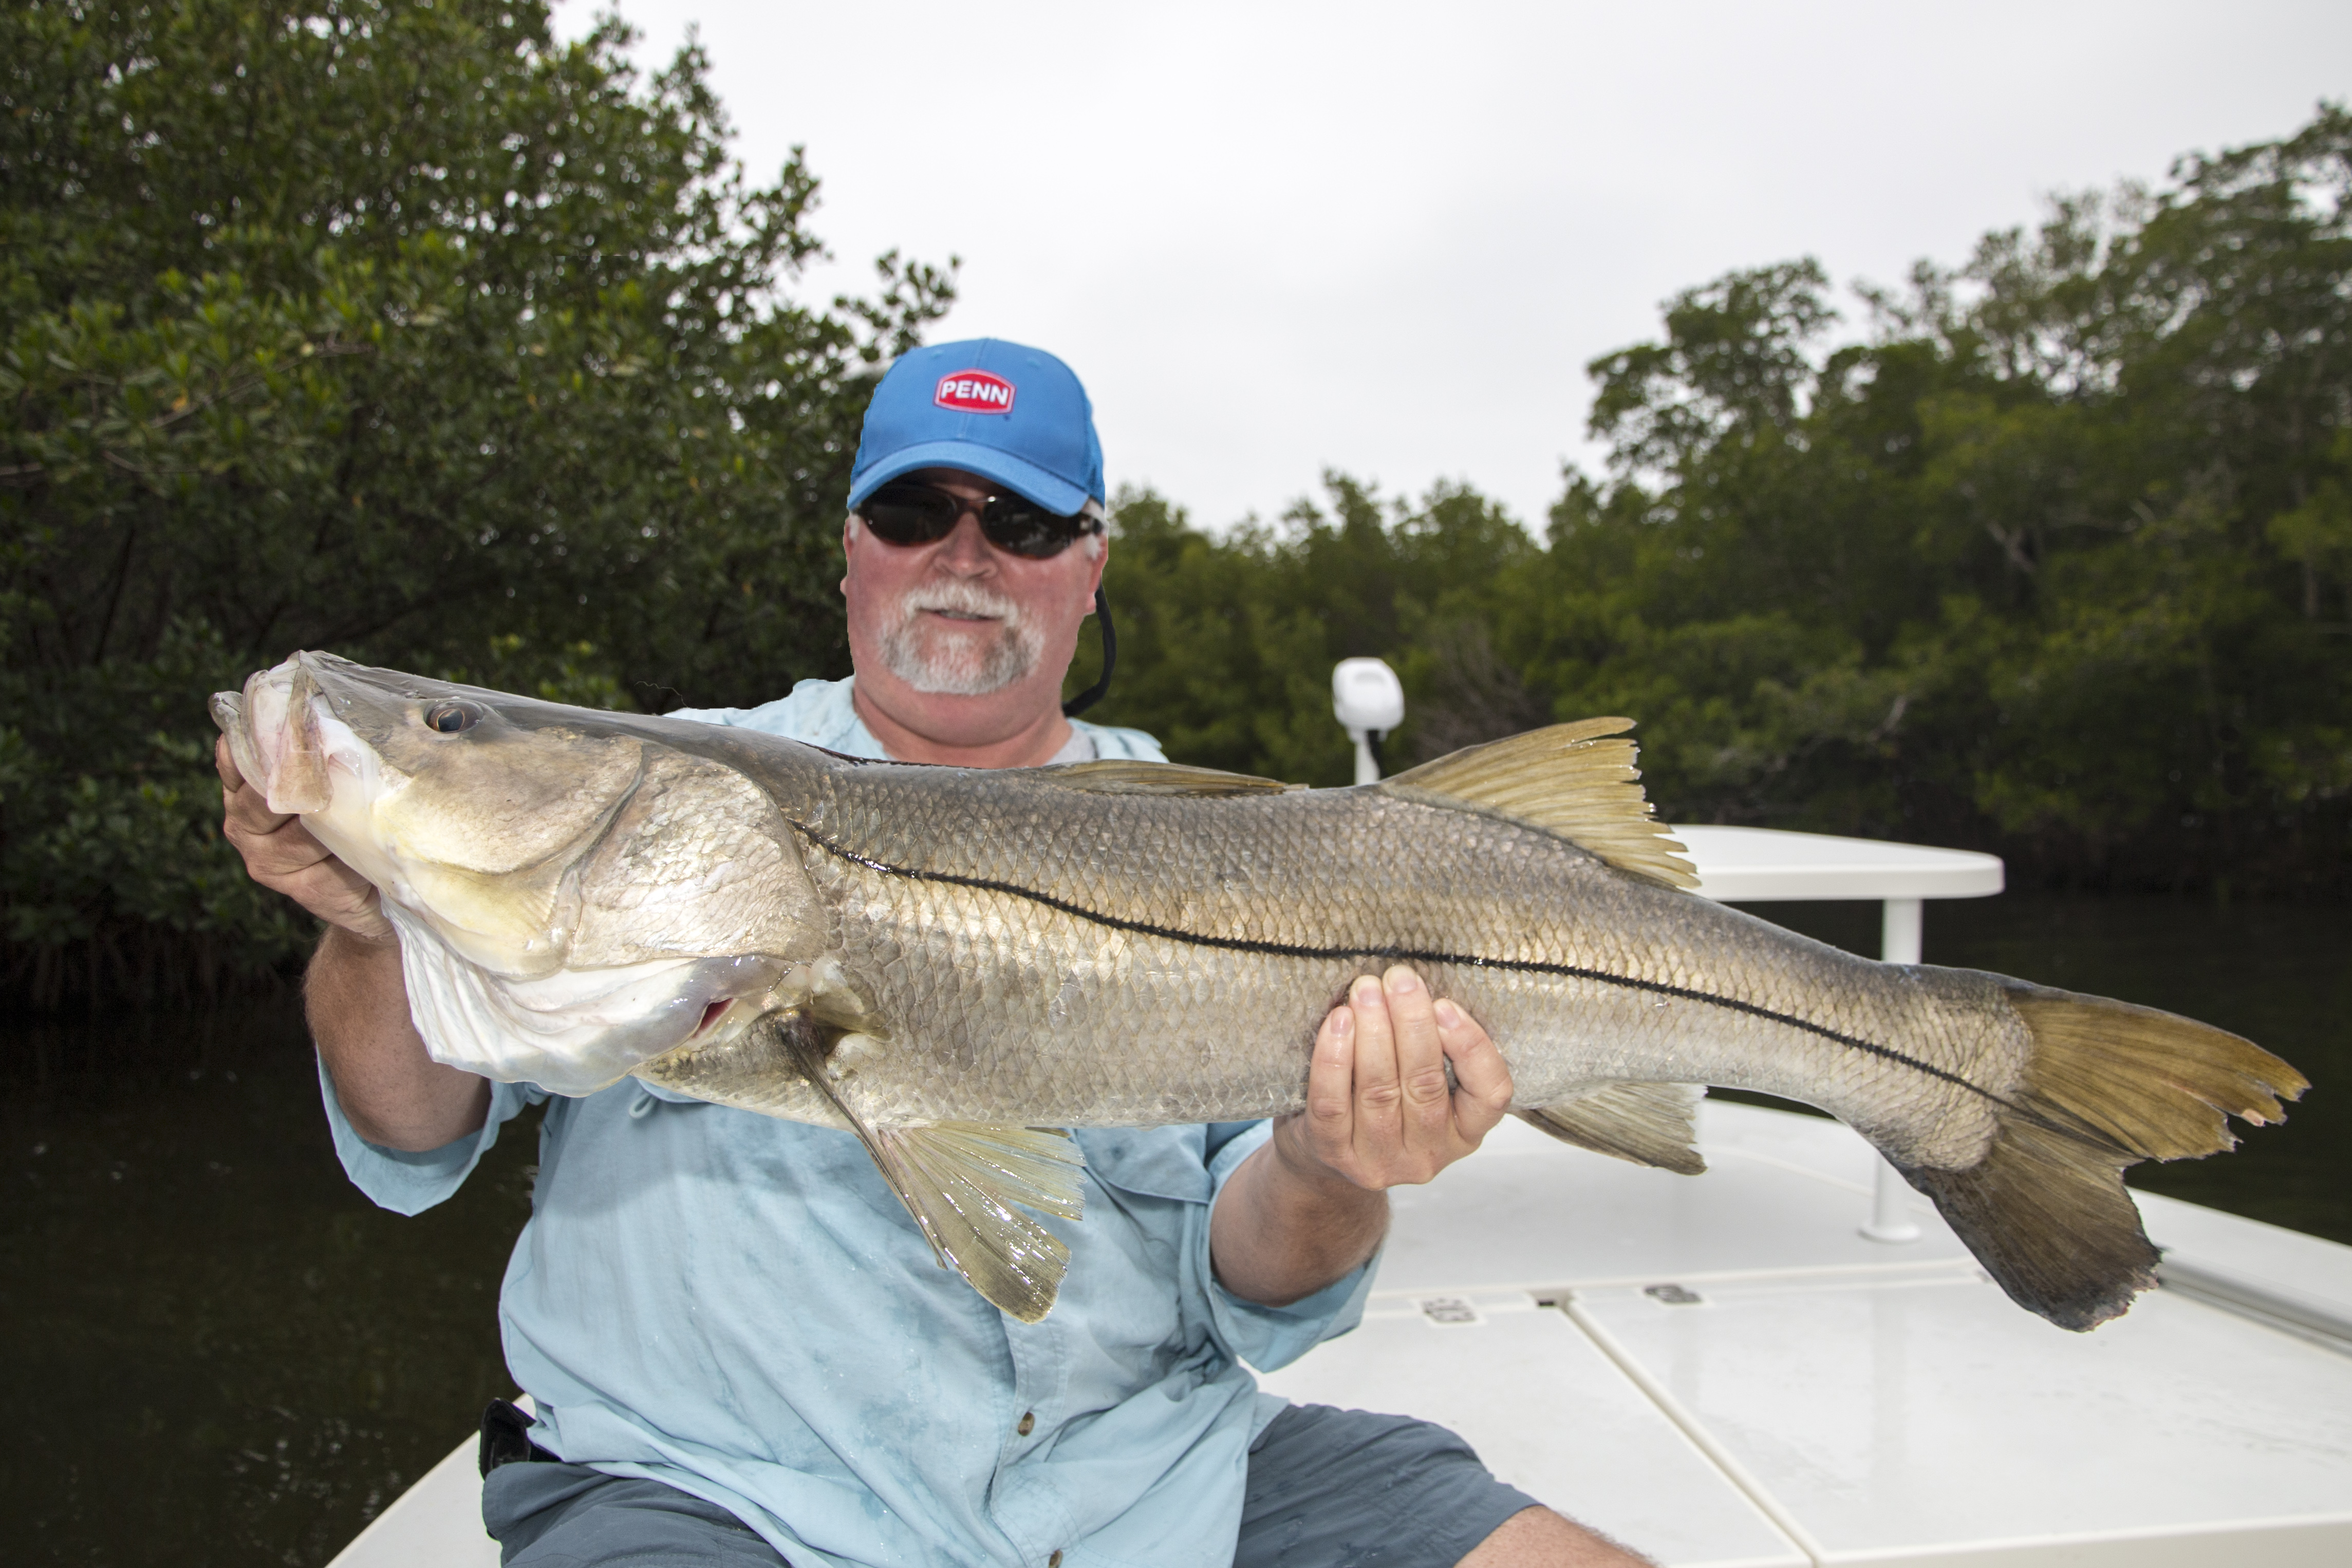 Awesome fishing on sanibel fishing charters sanibel for Sanibel island fishing charters